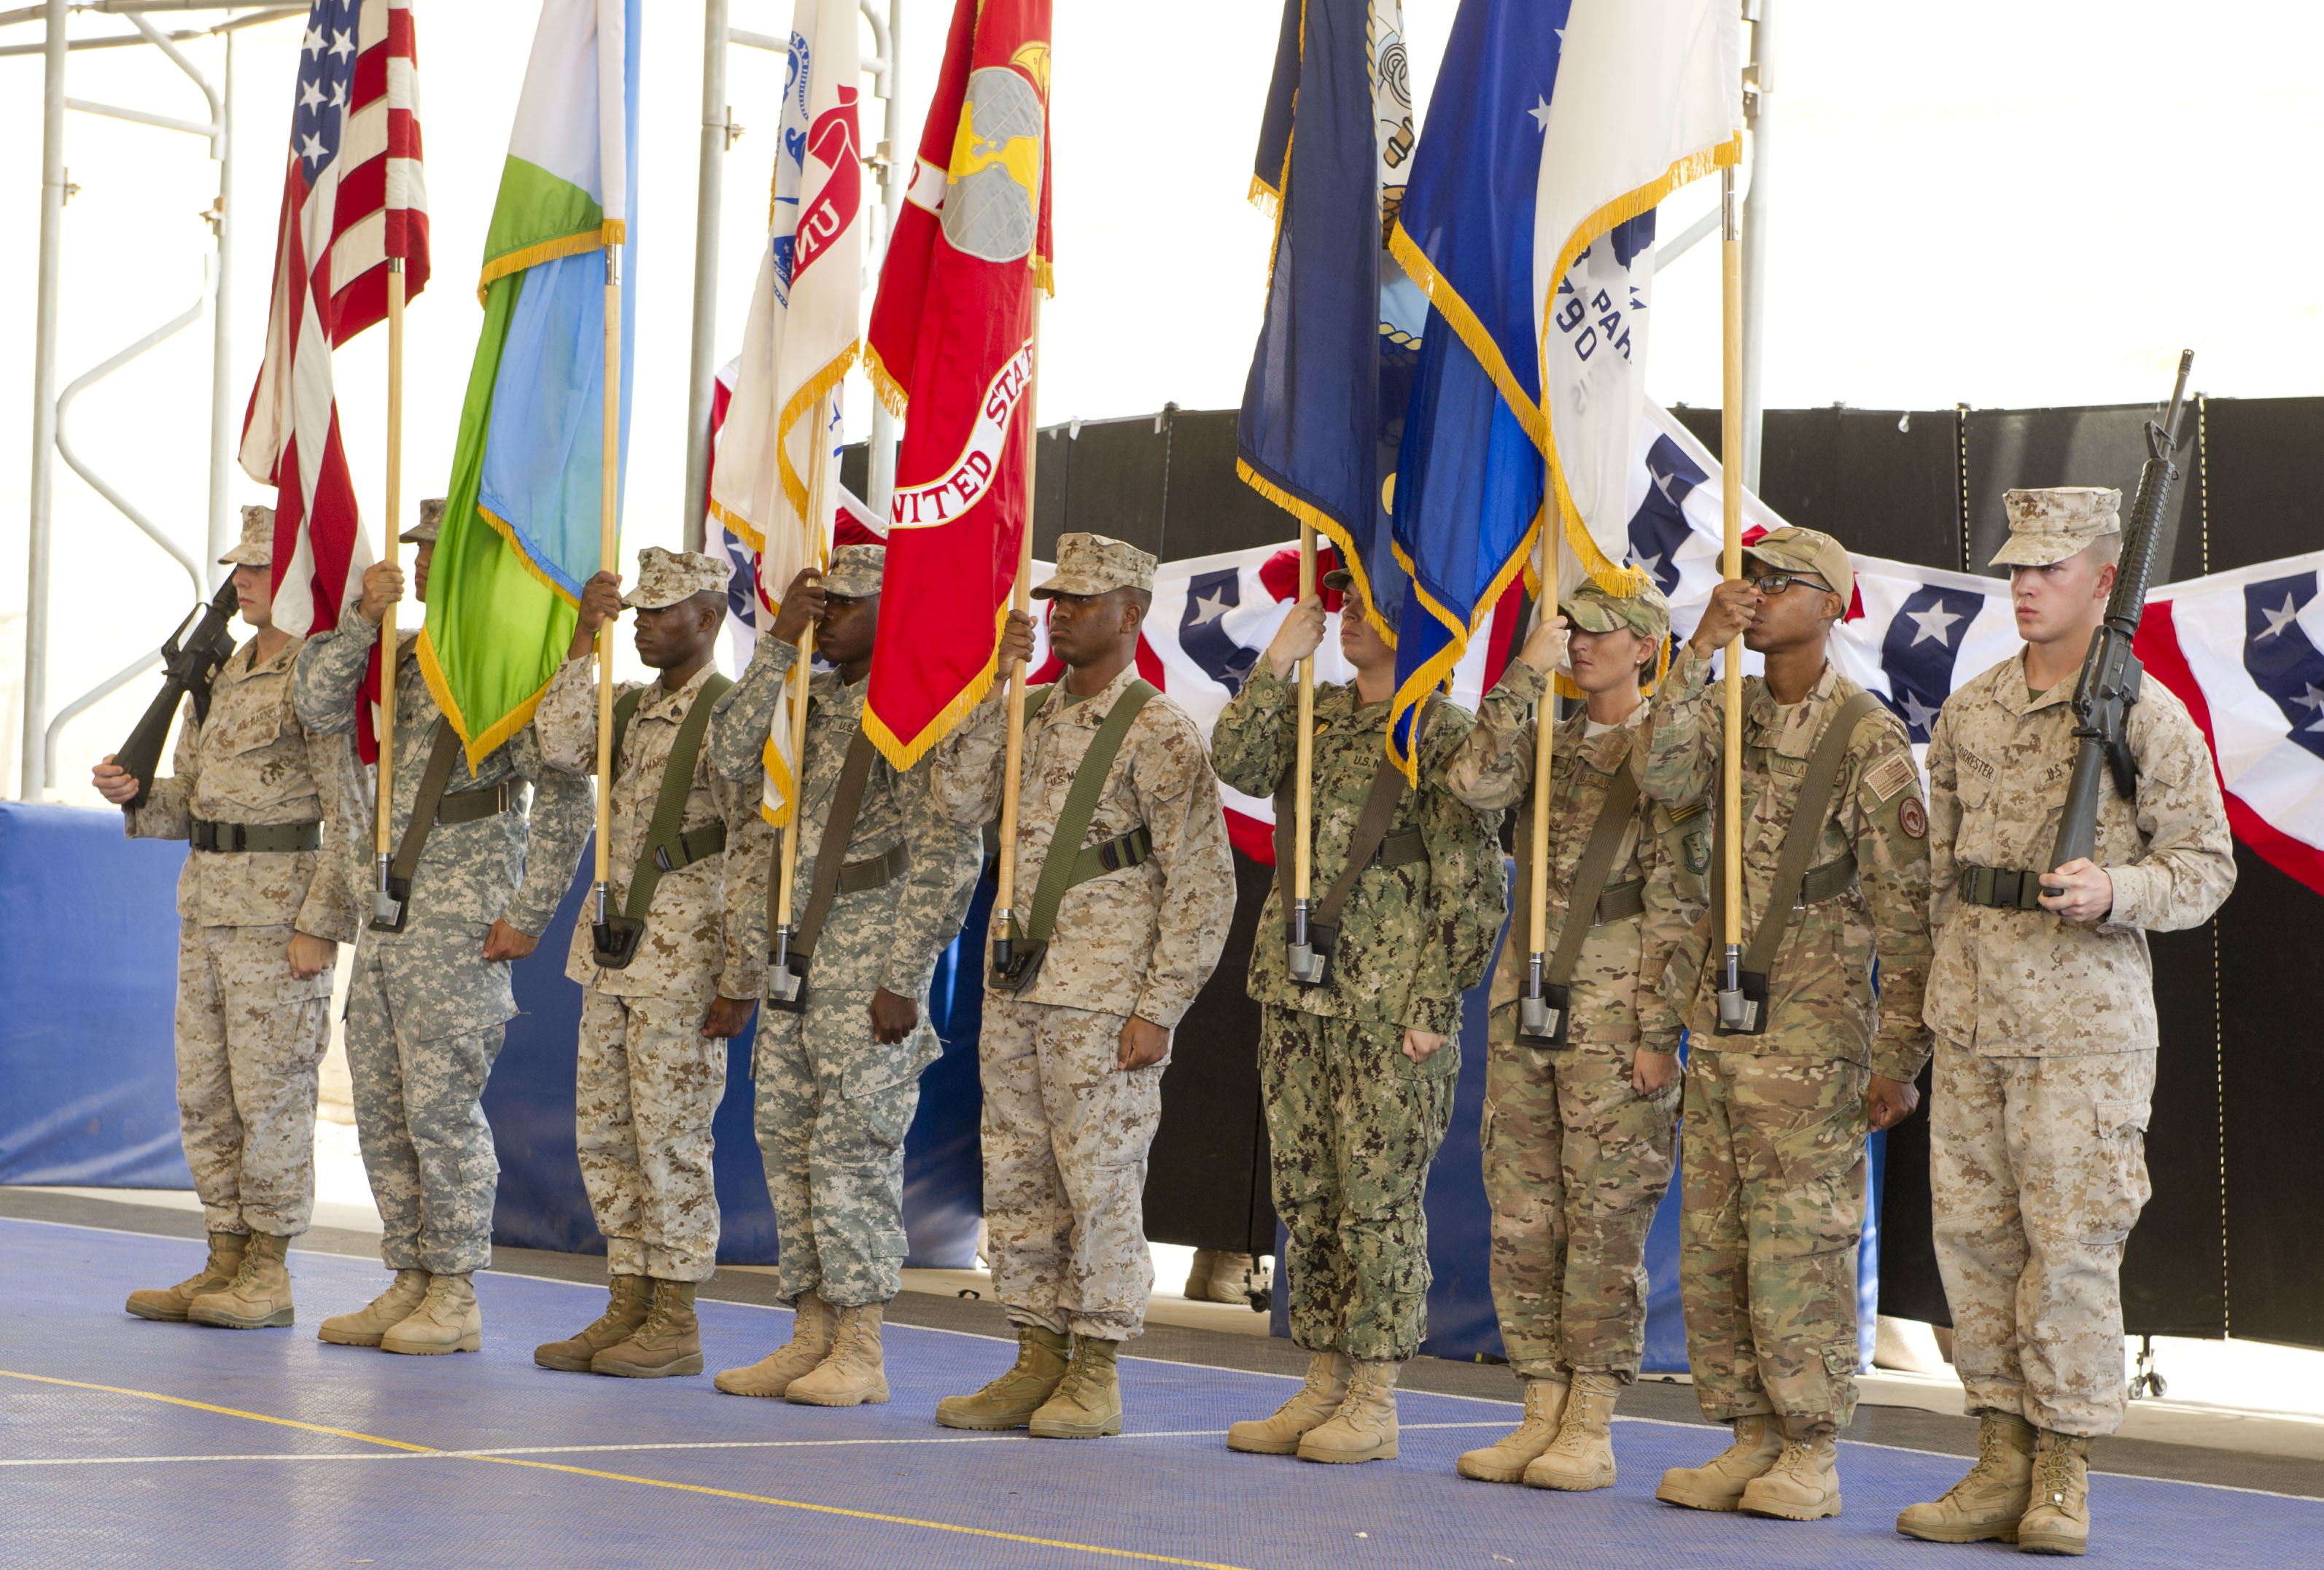 The Combined Joint Task Force-Horn of Africa joint service color guard presents colors during the CJTF-HOA Change of Command ceremony at Camp Lemonnier, Djibouti on April 14, 2015. U.S. Army Gen. David Rodriguez, U.S. Africa Command commander, presided over the ceremony where U.S. Army Maj. Gen. Mark Stammer assumed command of CJTF-HOA from Maj. Gen. Wayne W. Grigsby, Jr. (U.S. Air Force photo by Tech. Sgt. Ian Dean)